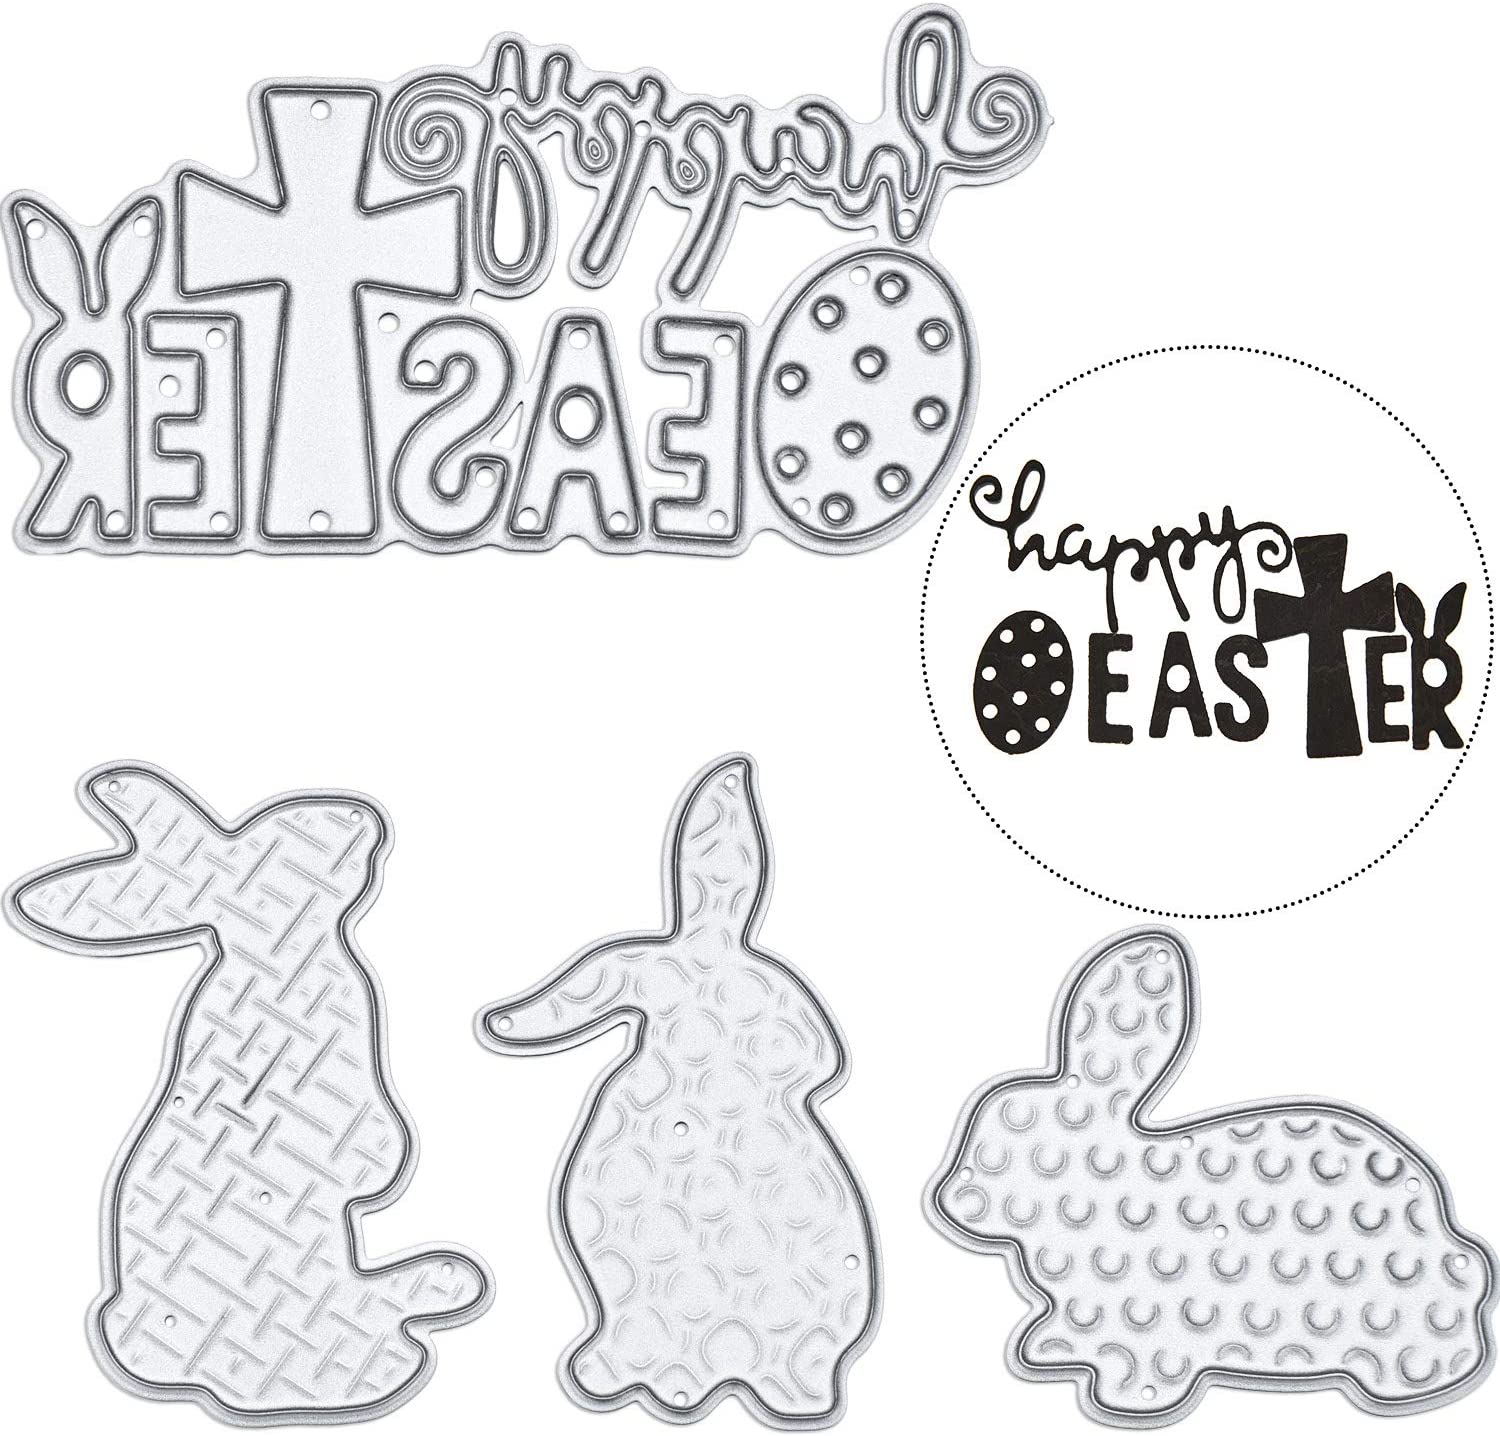 Set 2 4 Pieces Totally Pangda Happy Easter Letter Cutting Dies and Bunny Rabbit Metal Stencil Template for DIY Scrapbook Album Paper Card Embossing